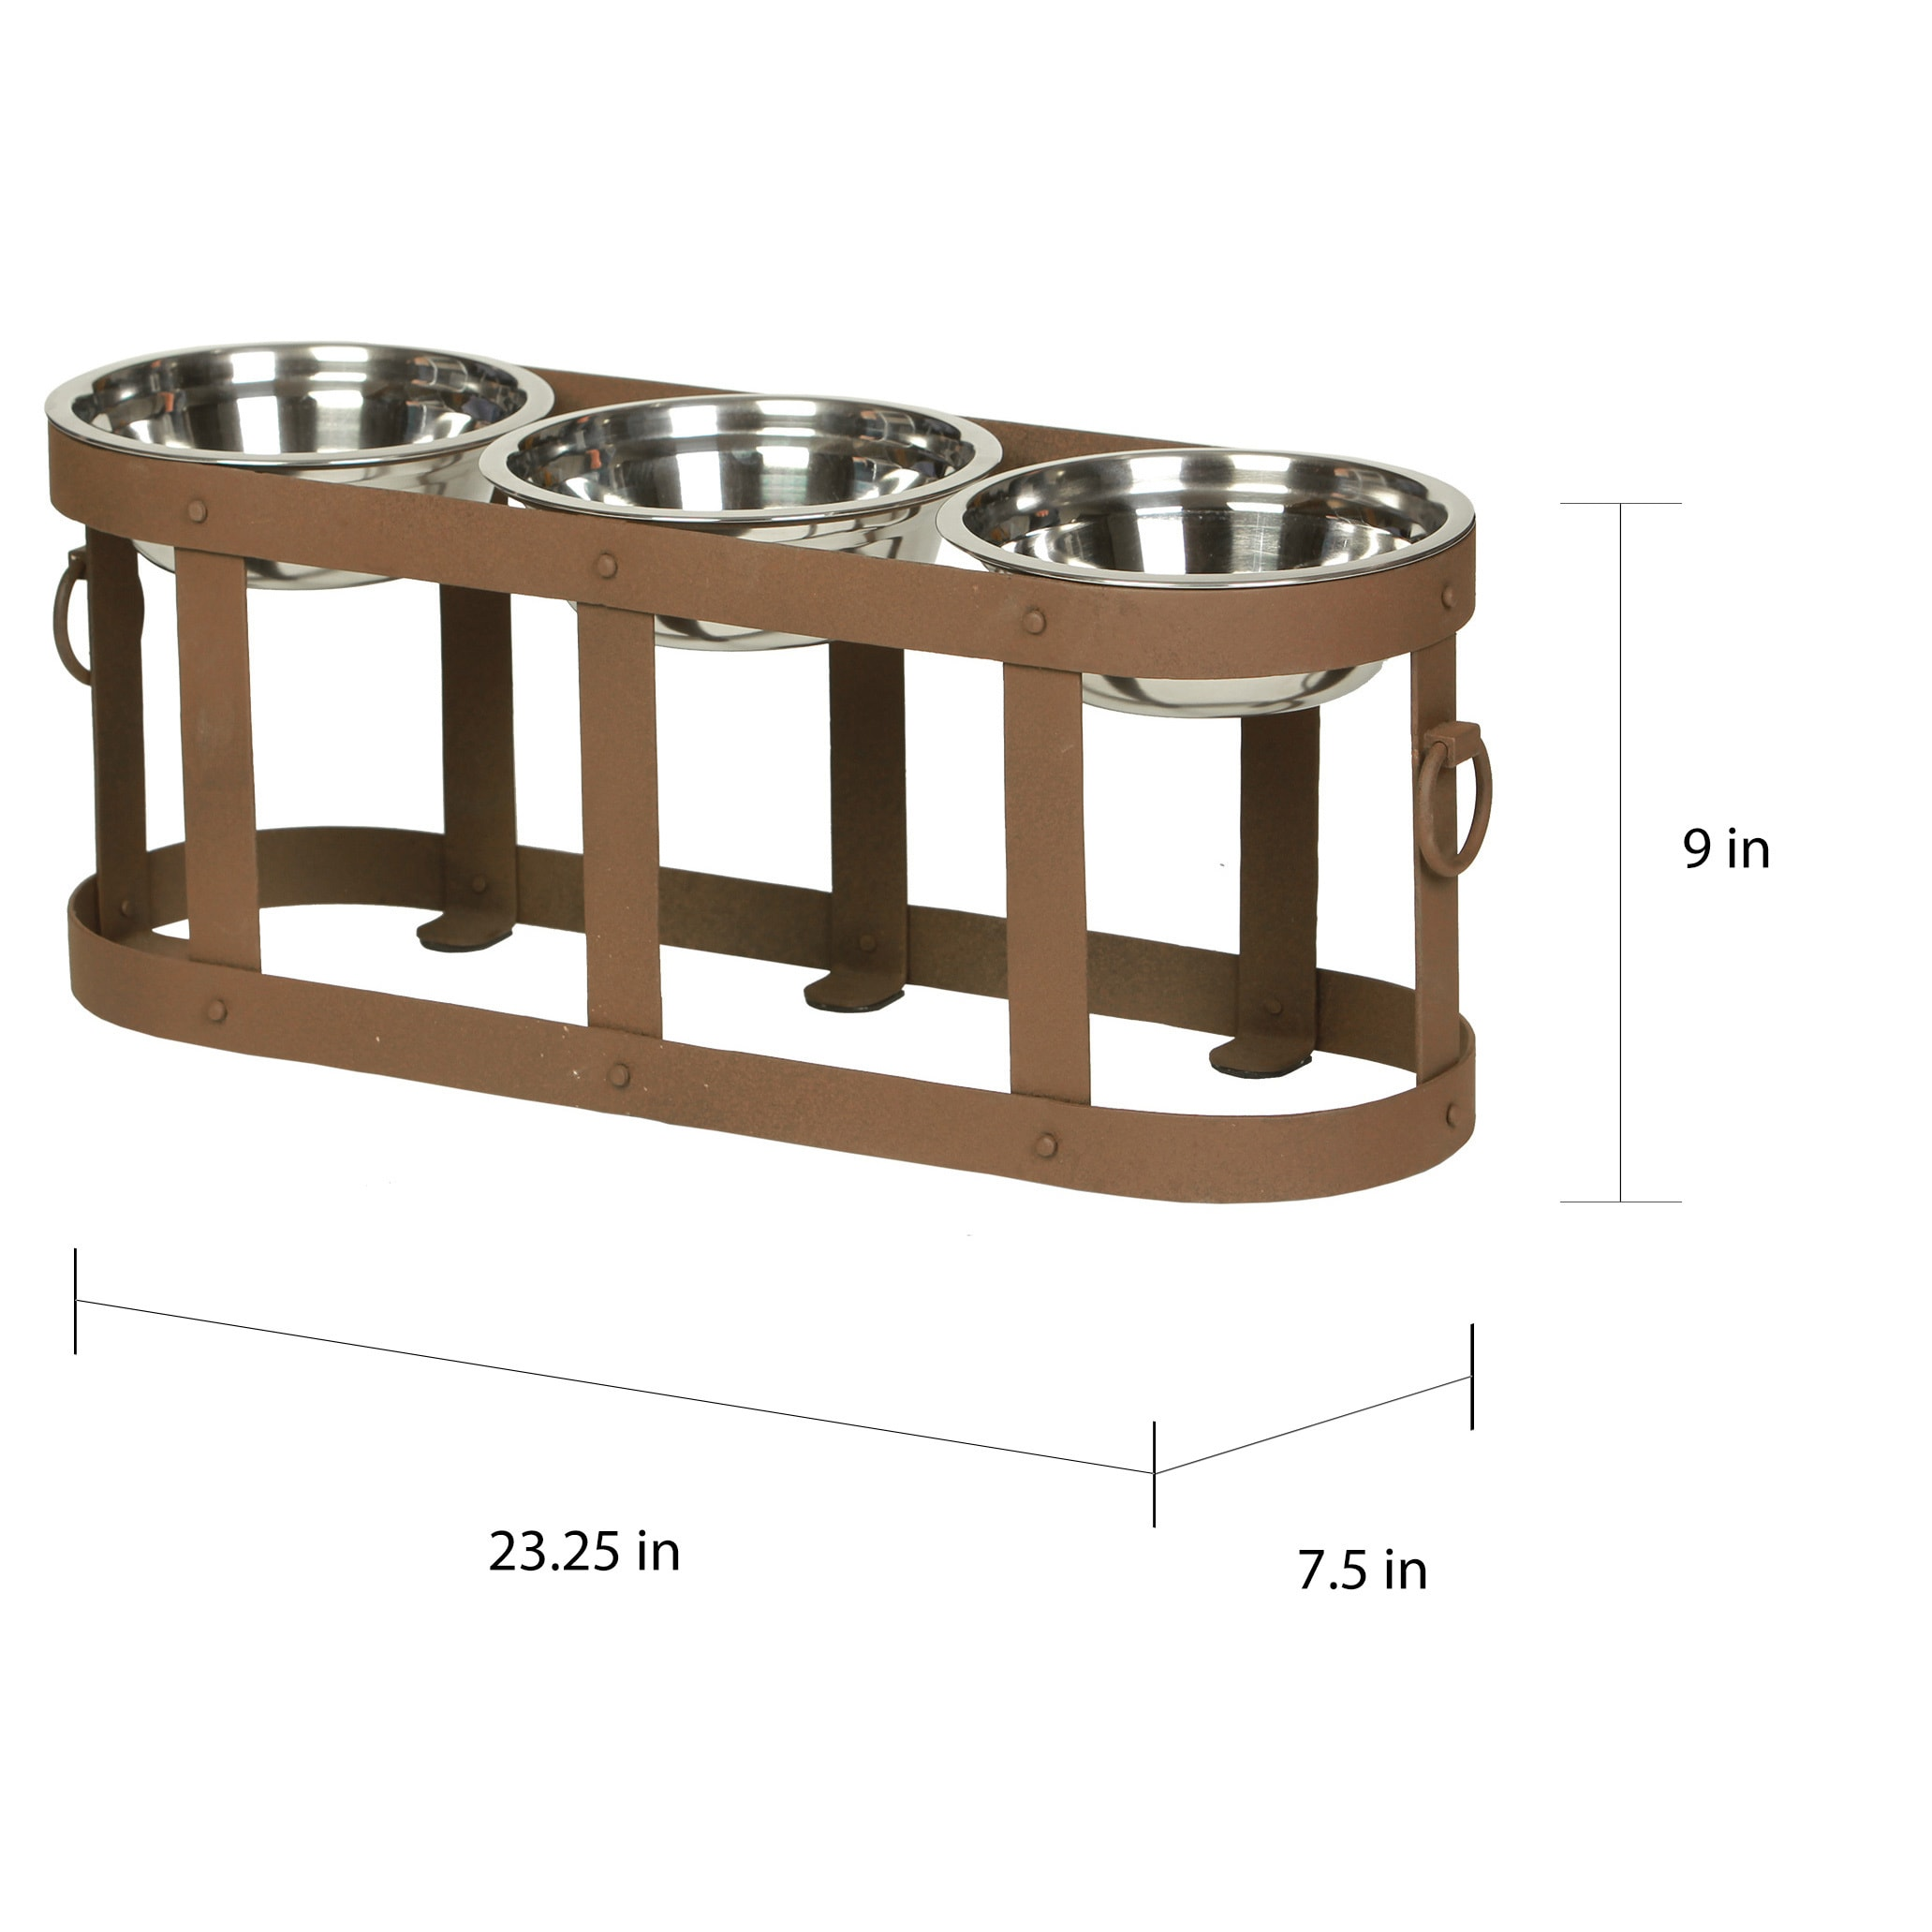 bowl petcostore dog petco shop feeder store en n left product adjustable s feed pets our triple pet